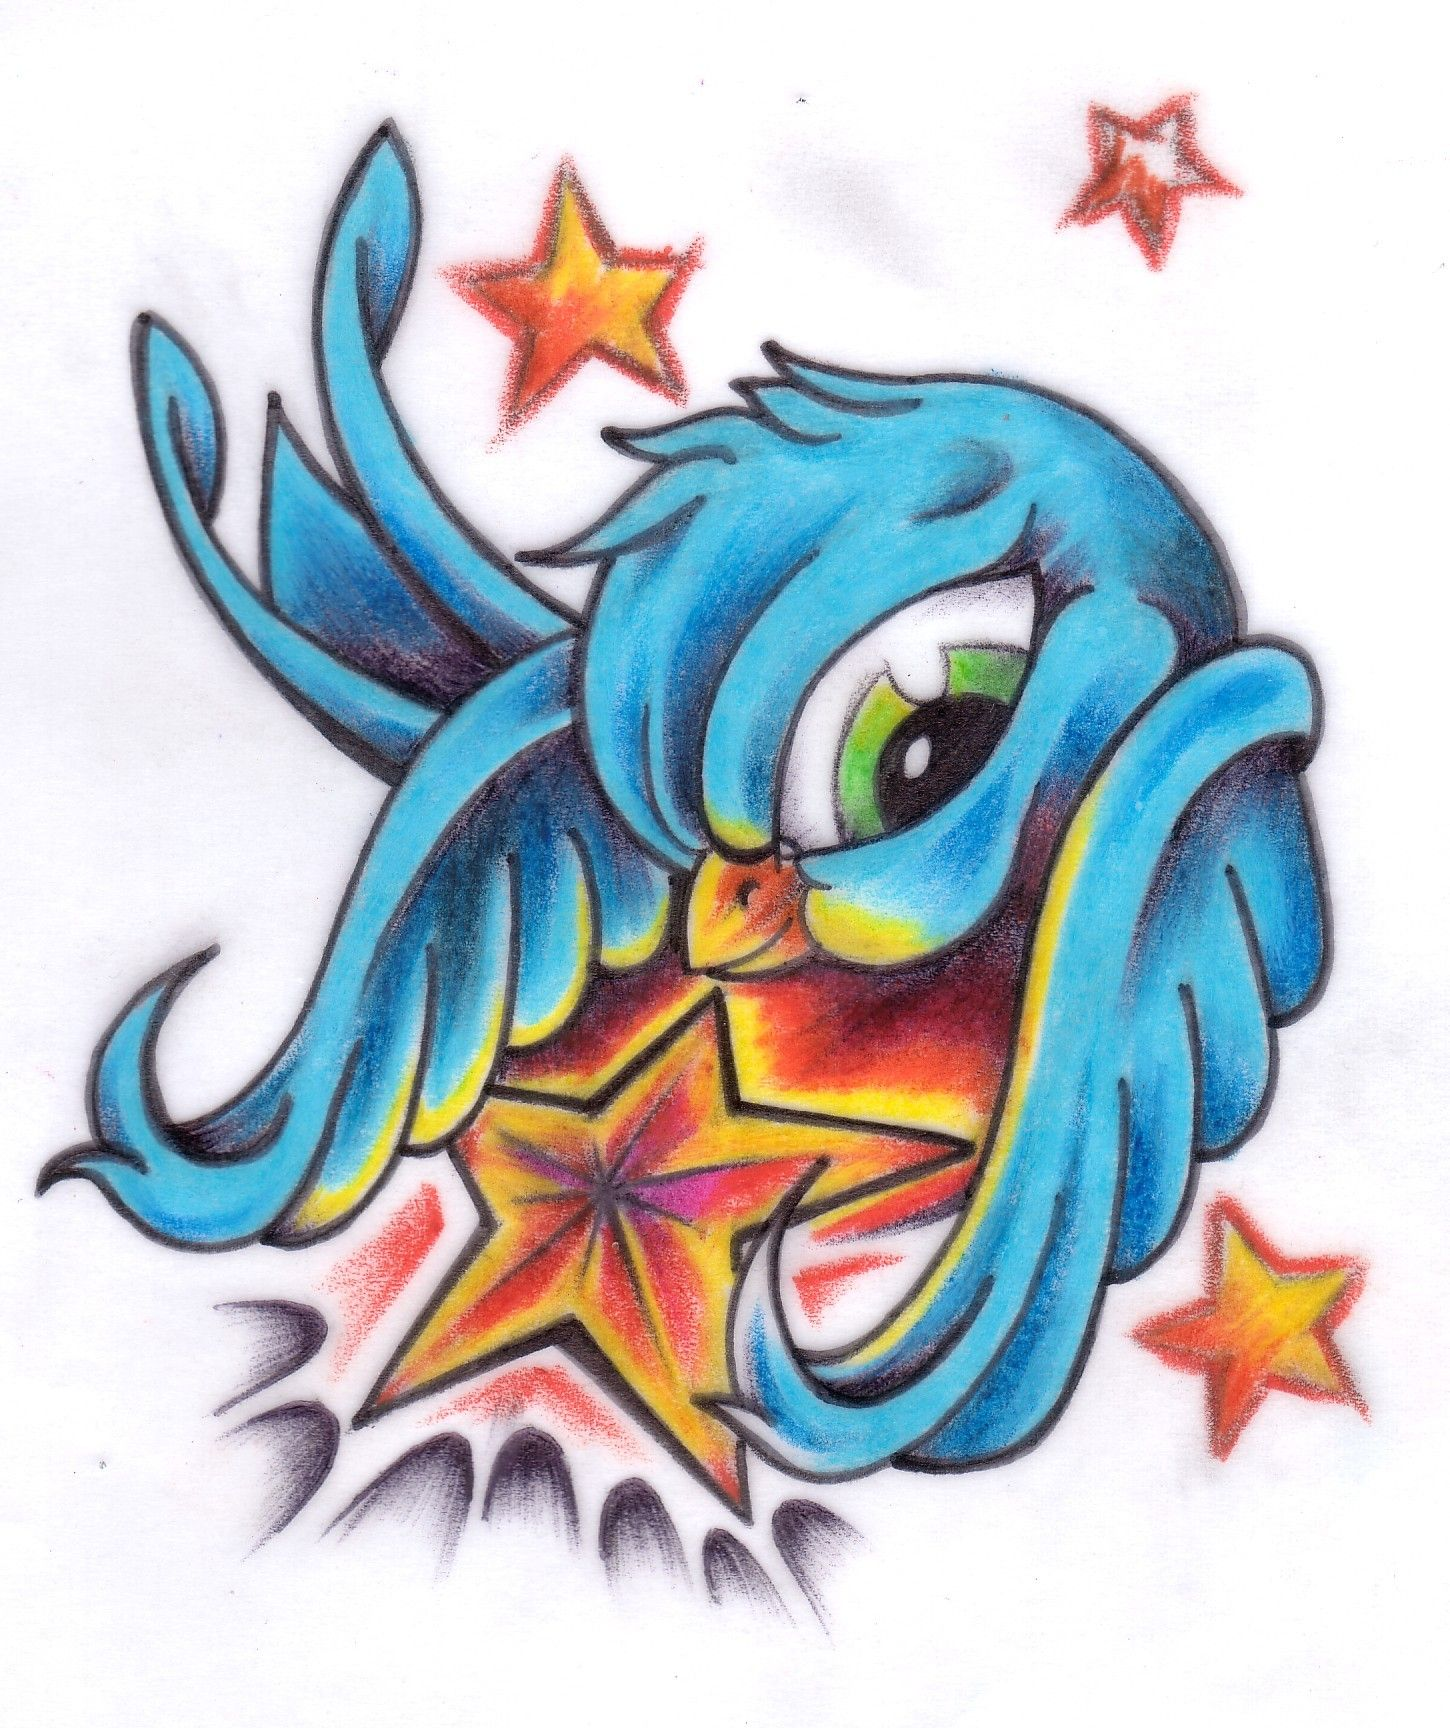 Chameleon Arts Tattoo Flash: Tattoo Flash Designs - Free Download